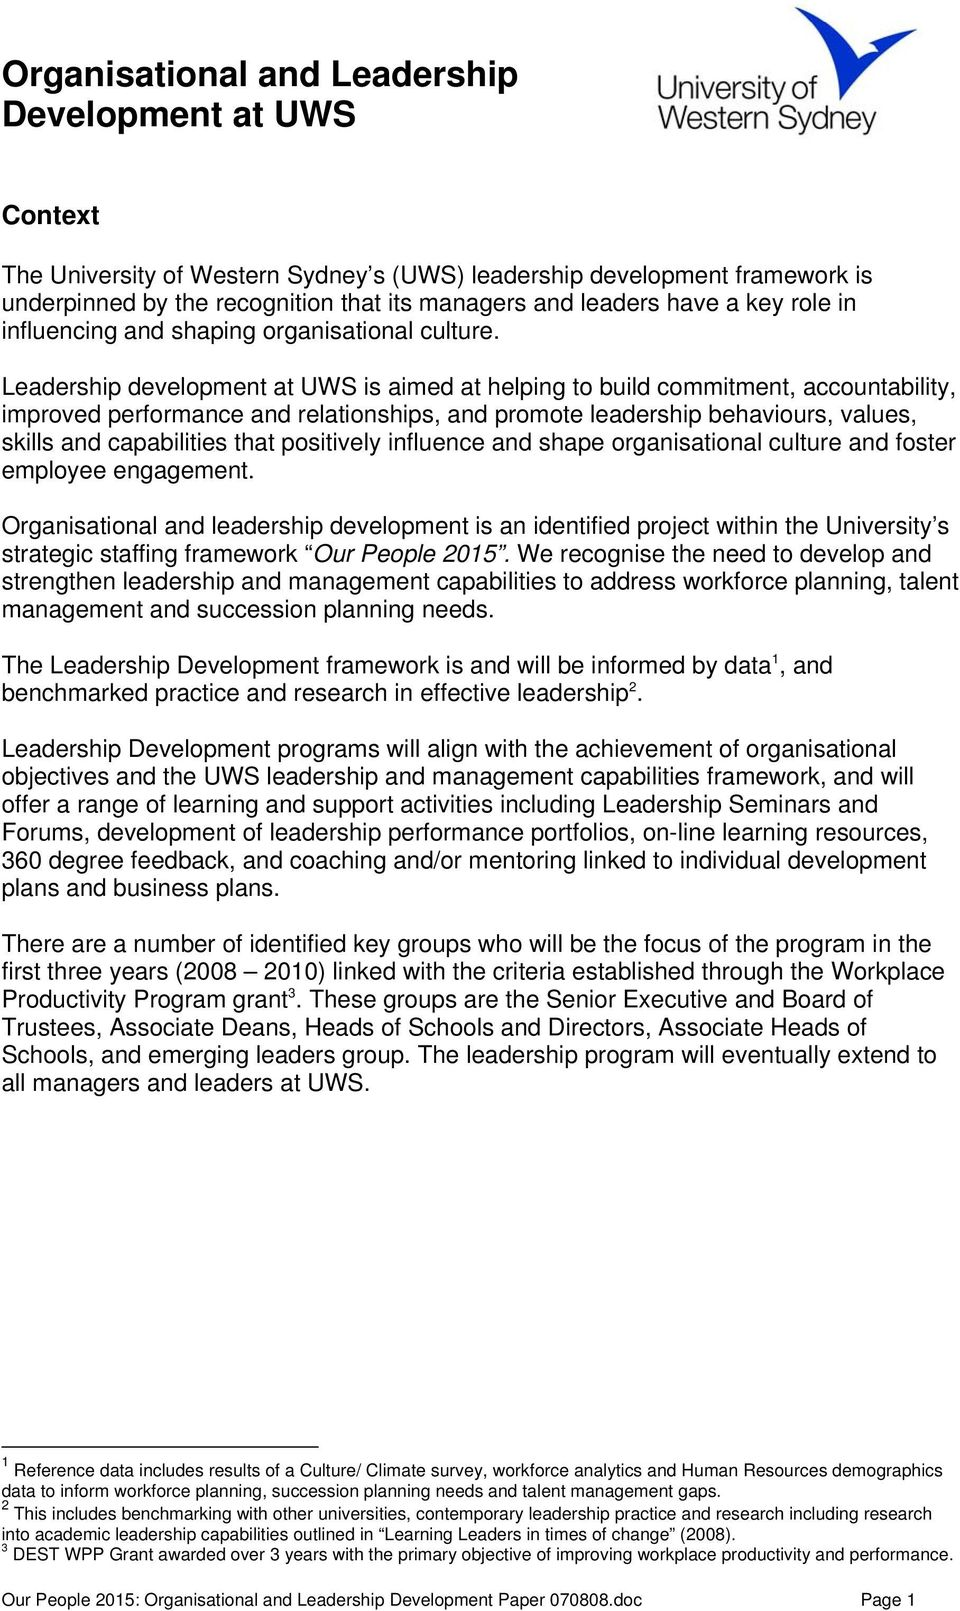 Leadership development at UWS is aimed at helping to build commitment, accountability, improved performance and relationships, and promote leadership behaviours, values, skills and capabilities that